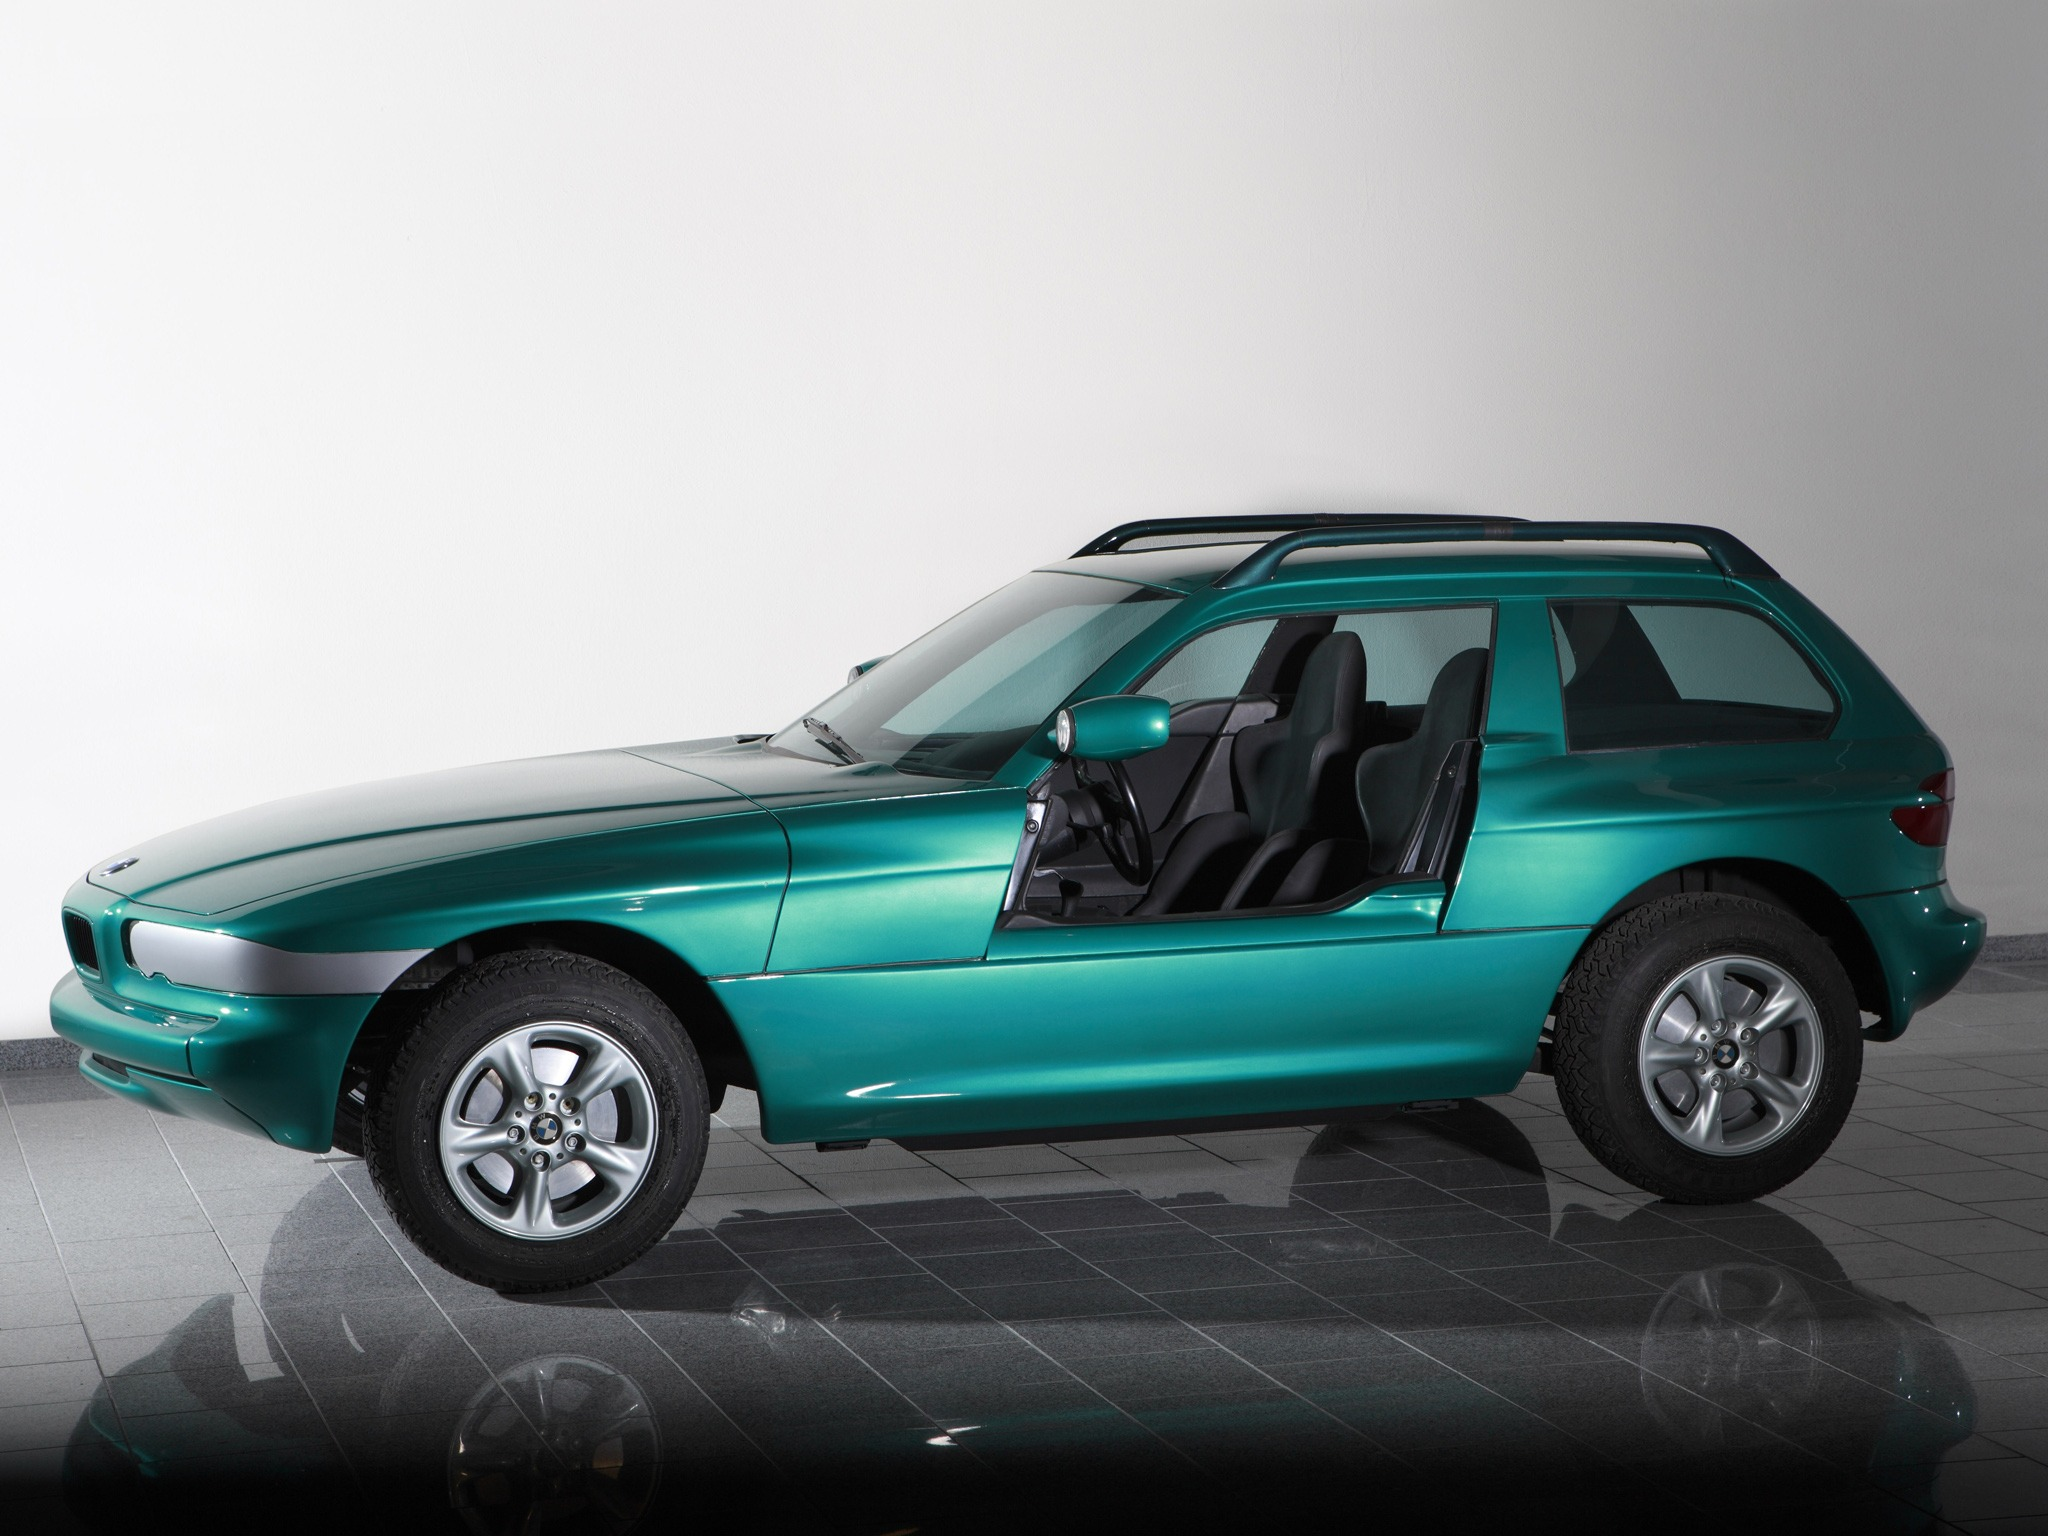 Bmw Z1 Coupe 1991 Old Concept Cars